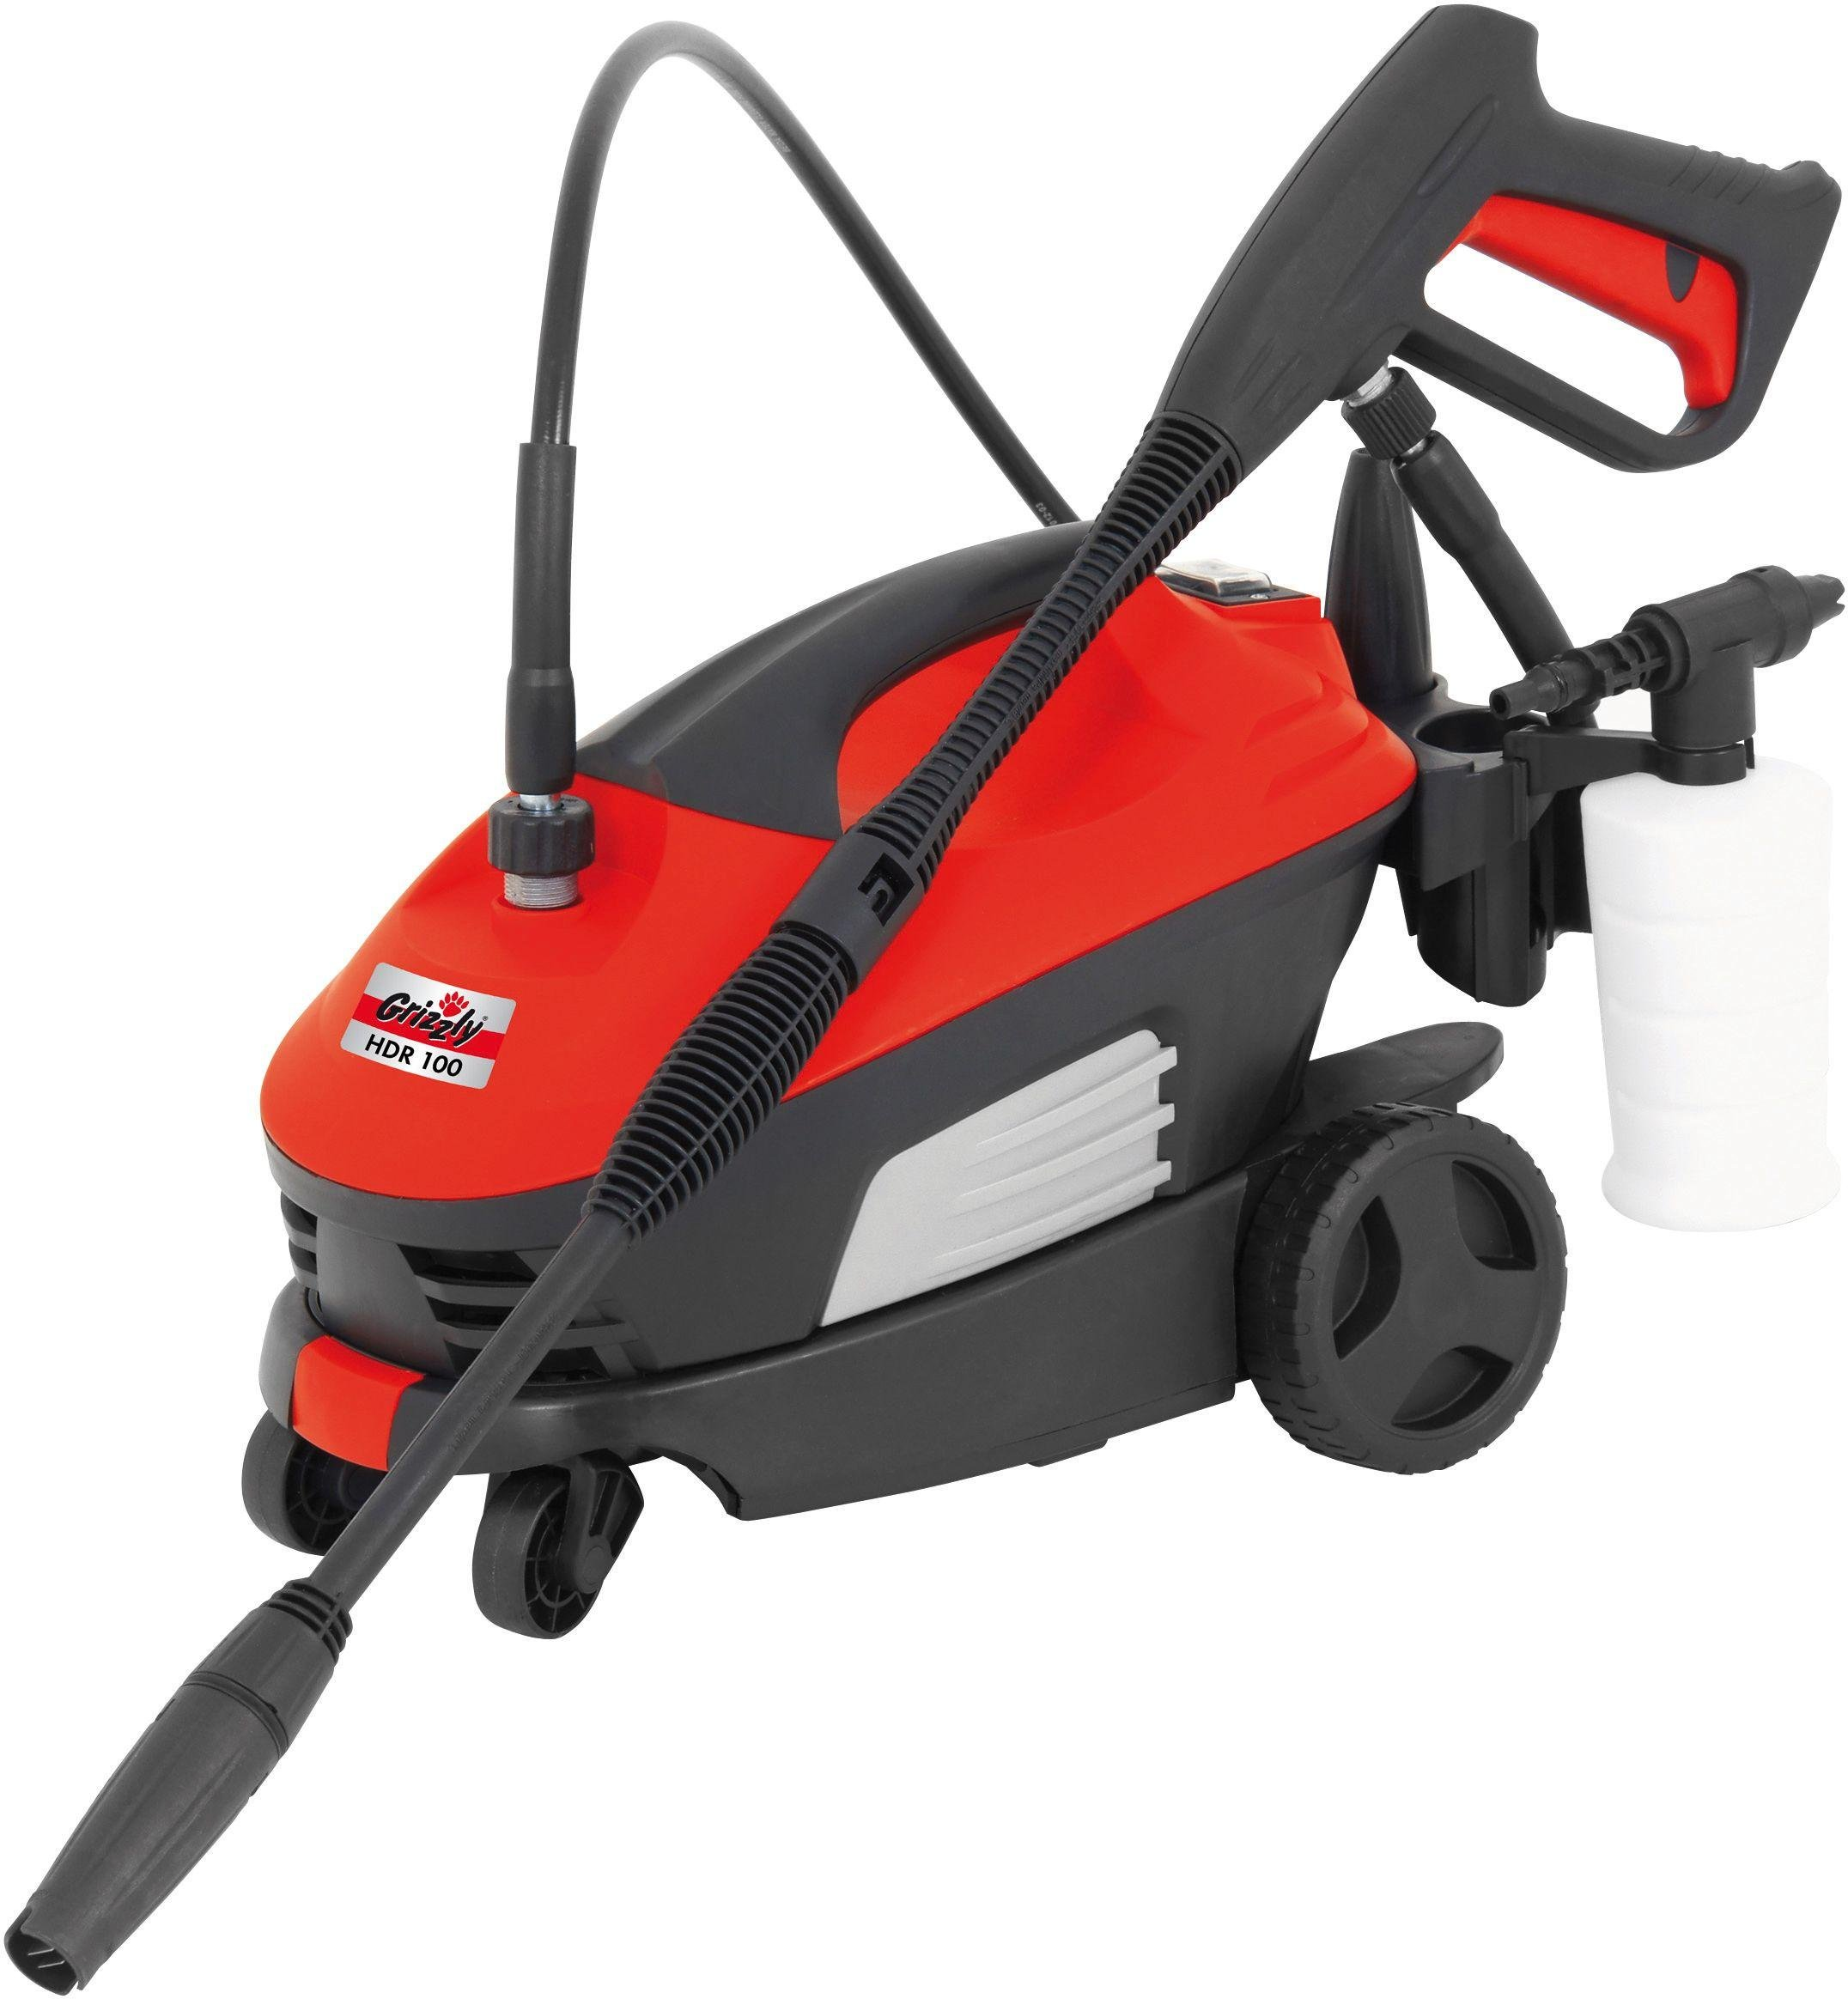 Image of Grizzly Tools 1400W Pressure Washer.